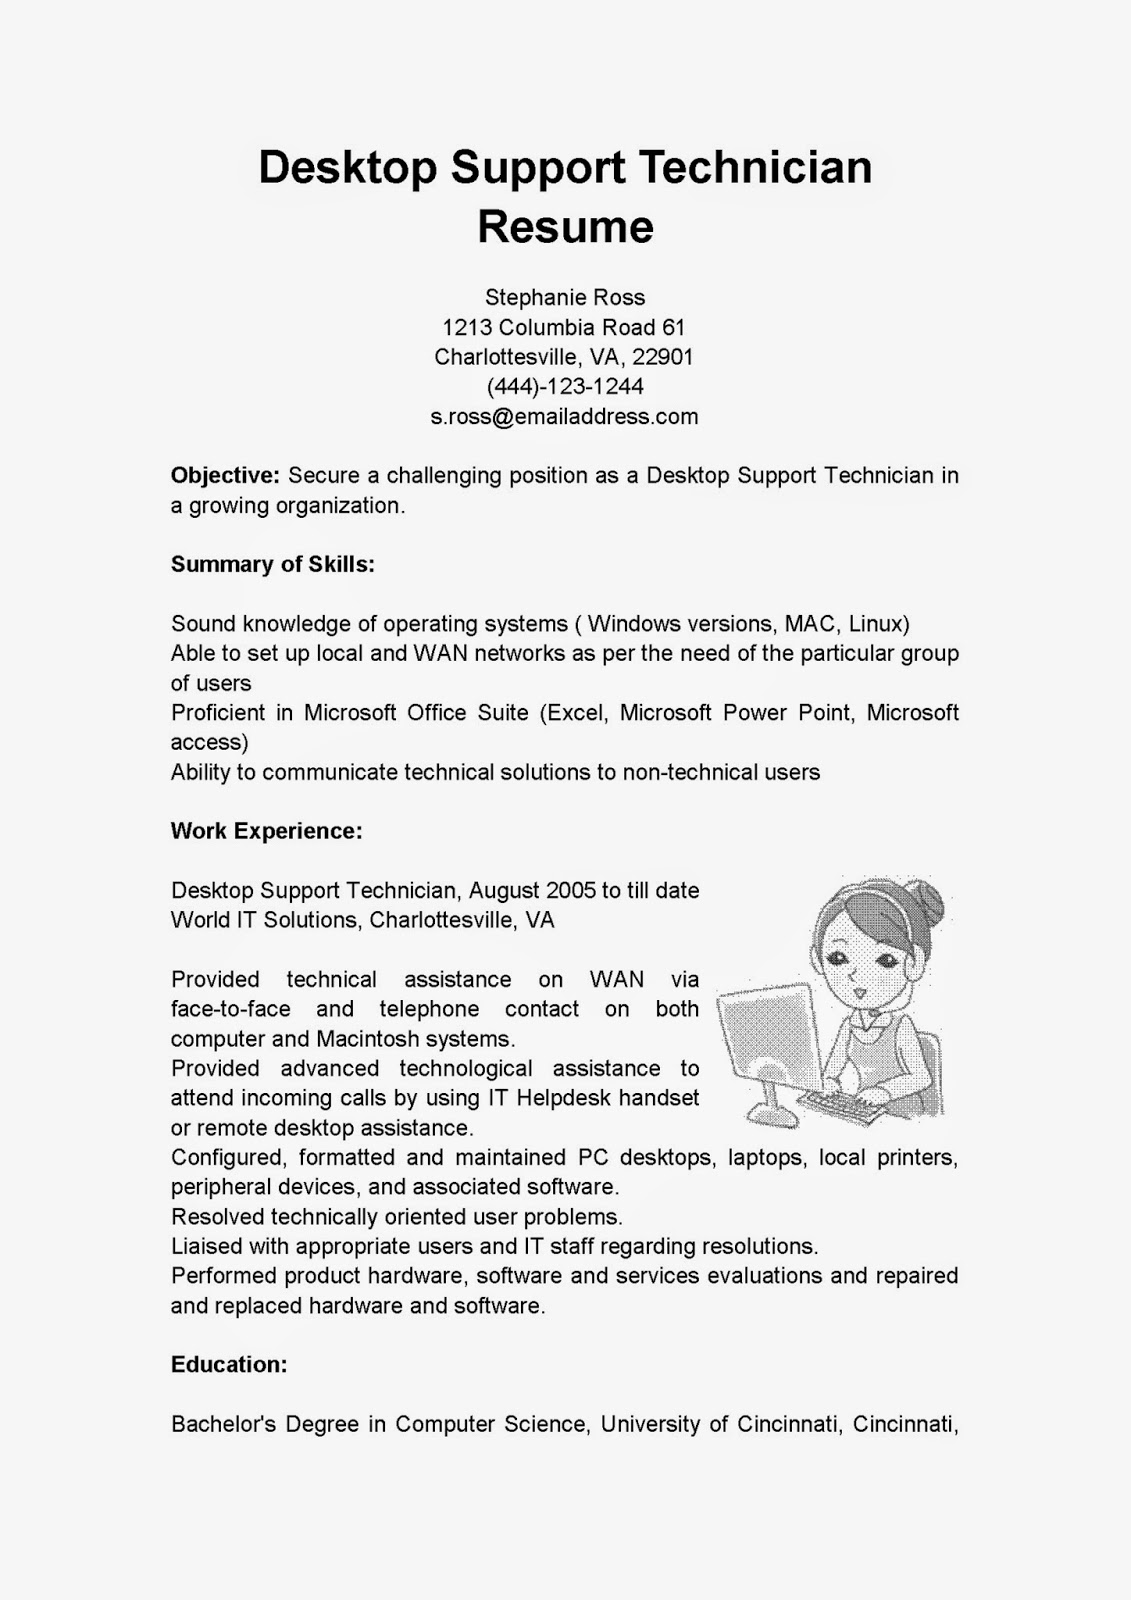 Desktop Support Resume desktop support resume samples Desktop Support Technician Resume